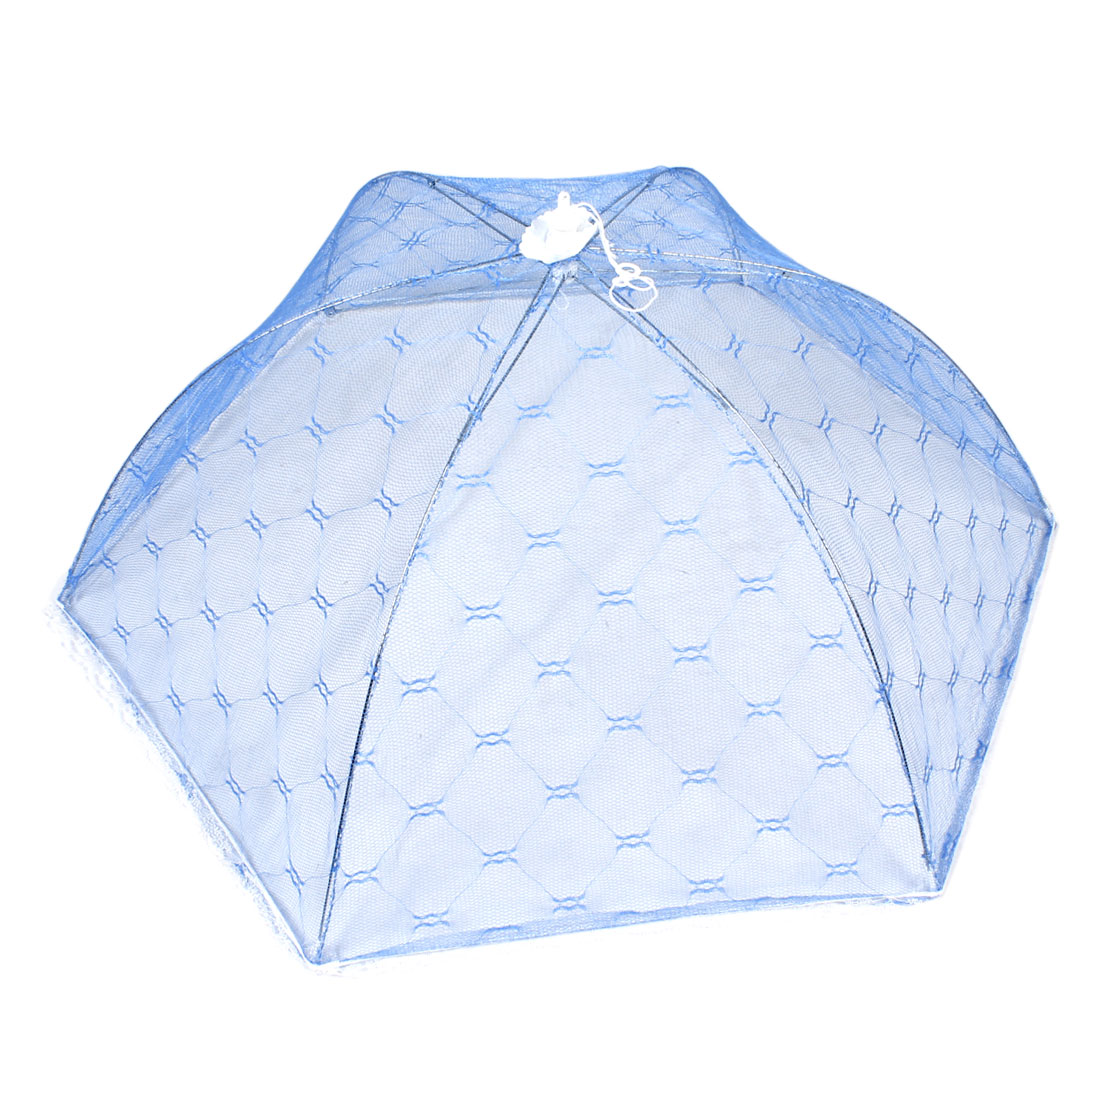 Household White Lace Trim Blue Nylon Mesh Foldable Dish Food Cover Umbrella